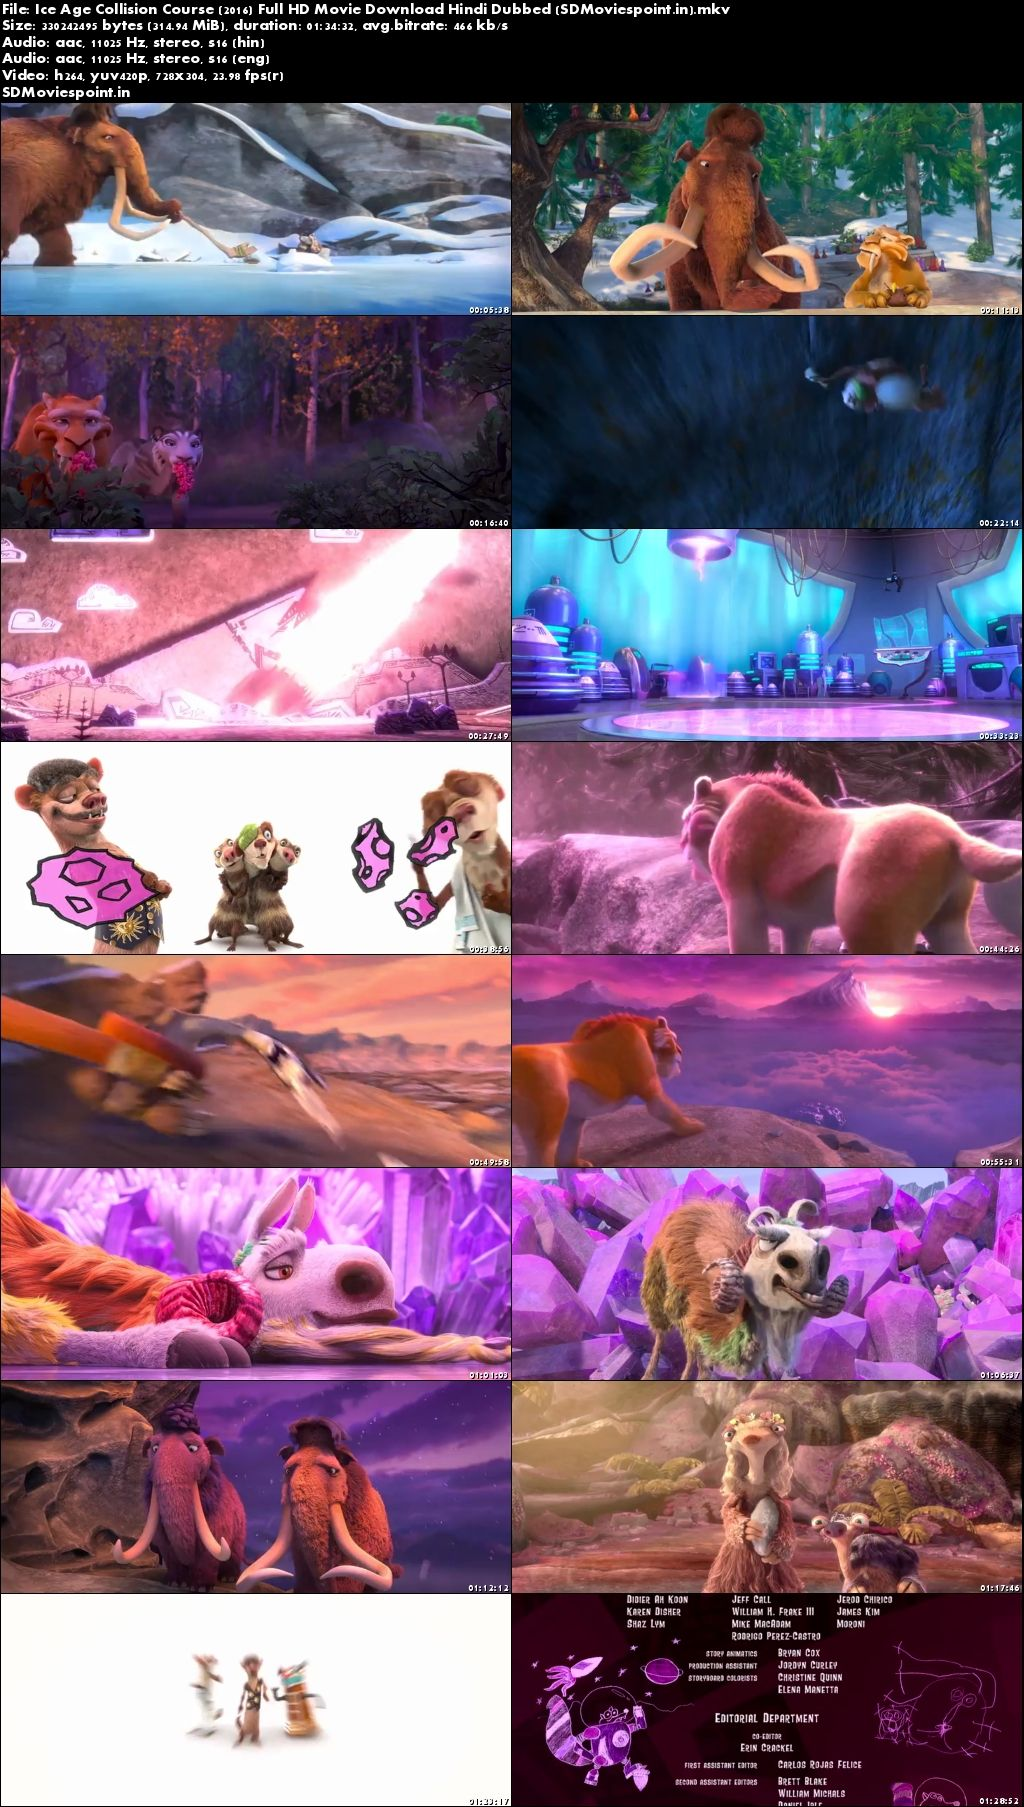 Screen Shot Ice Age Collision Course (2016) Full HD Movie Download Hindi Dubbed